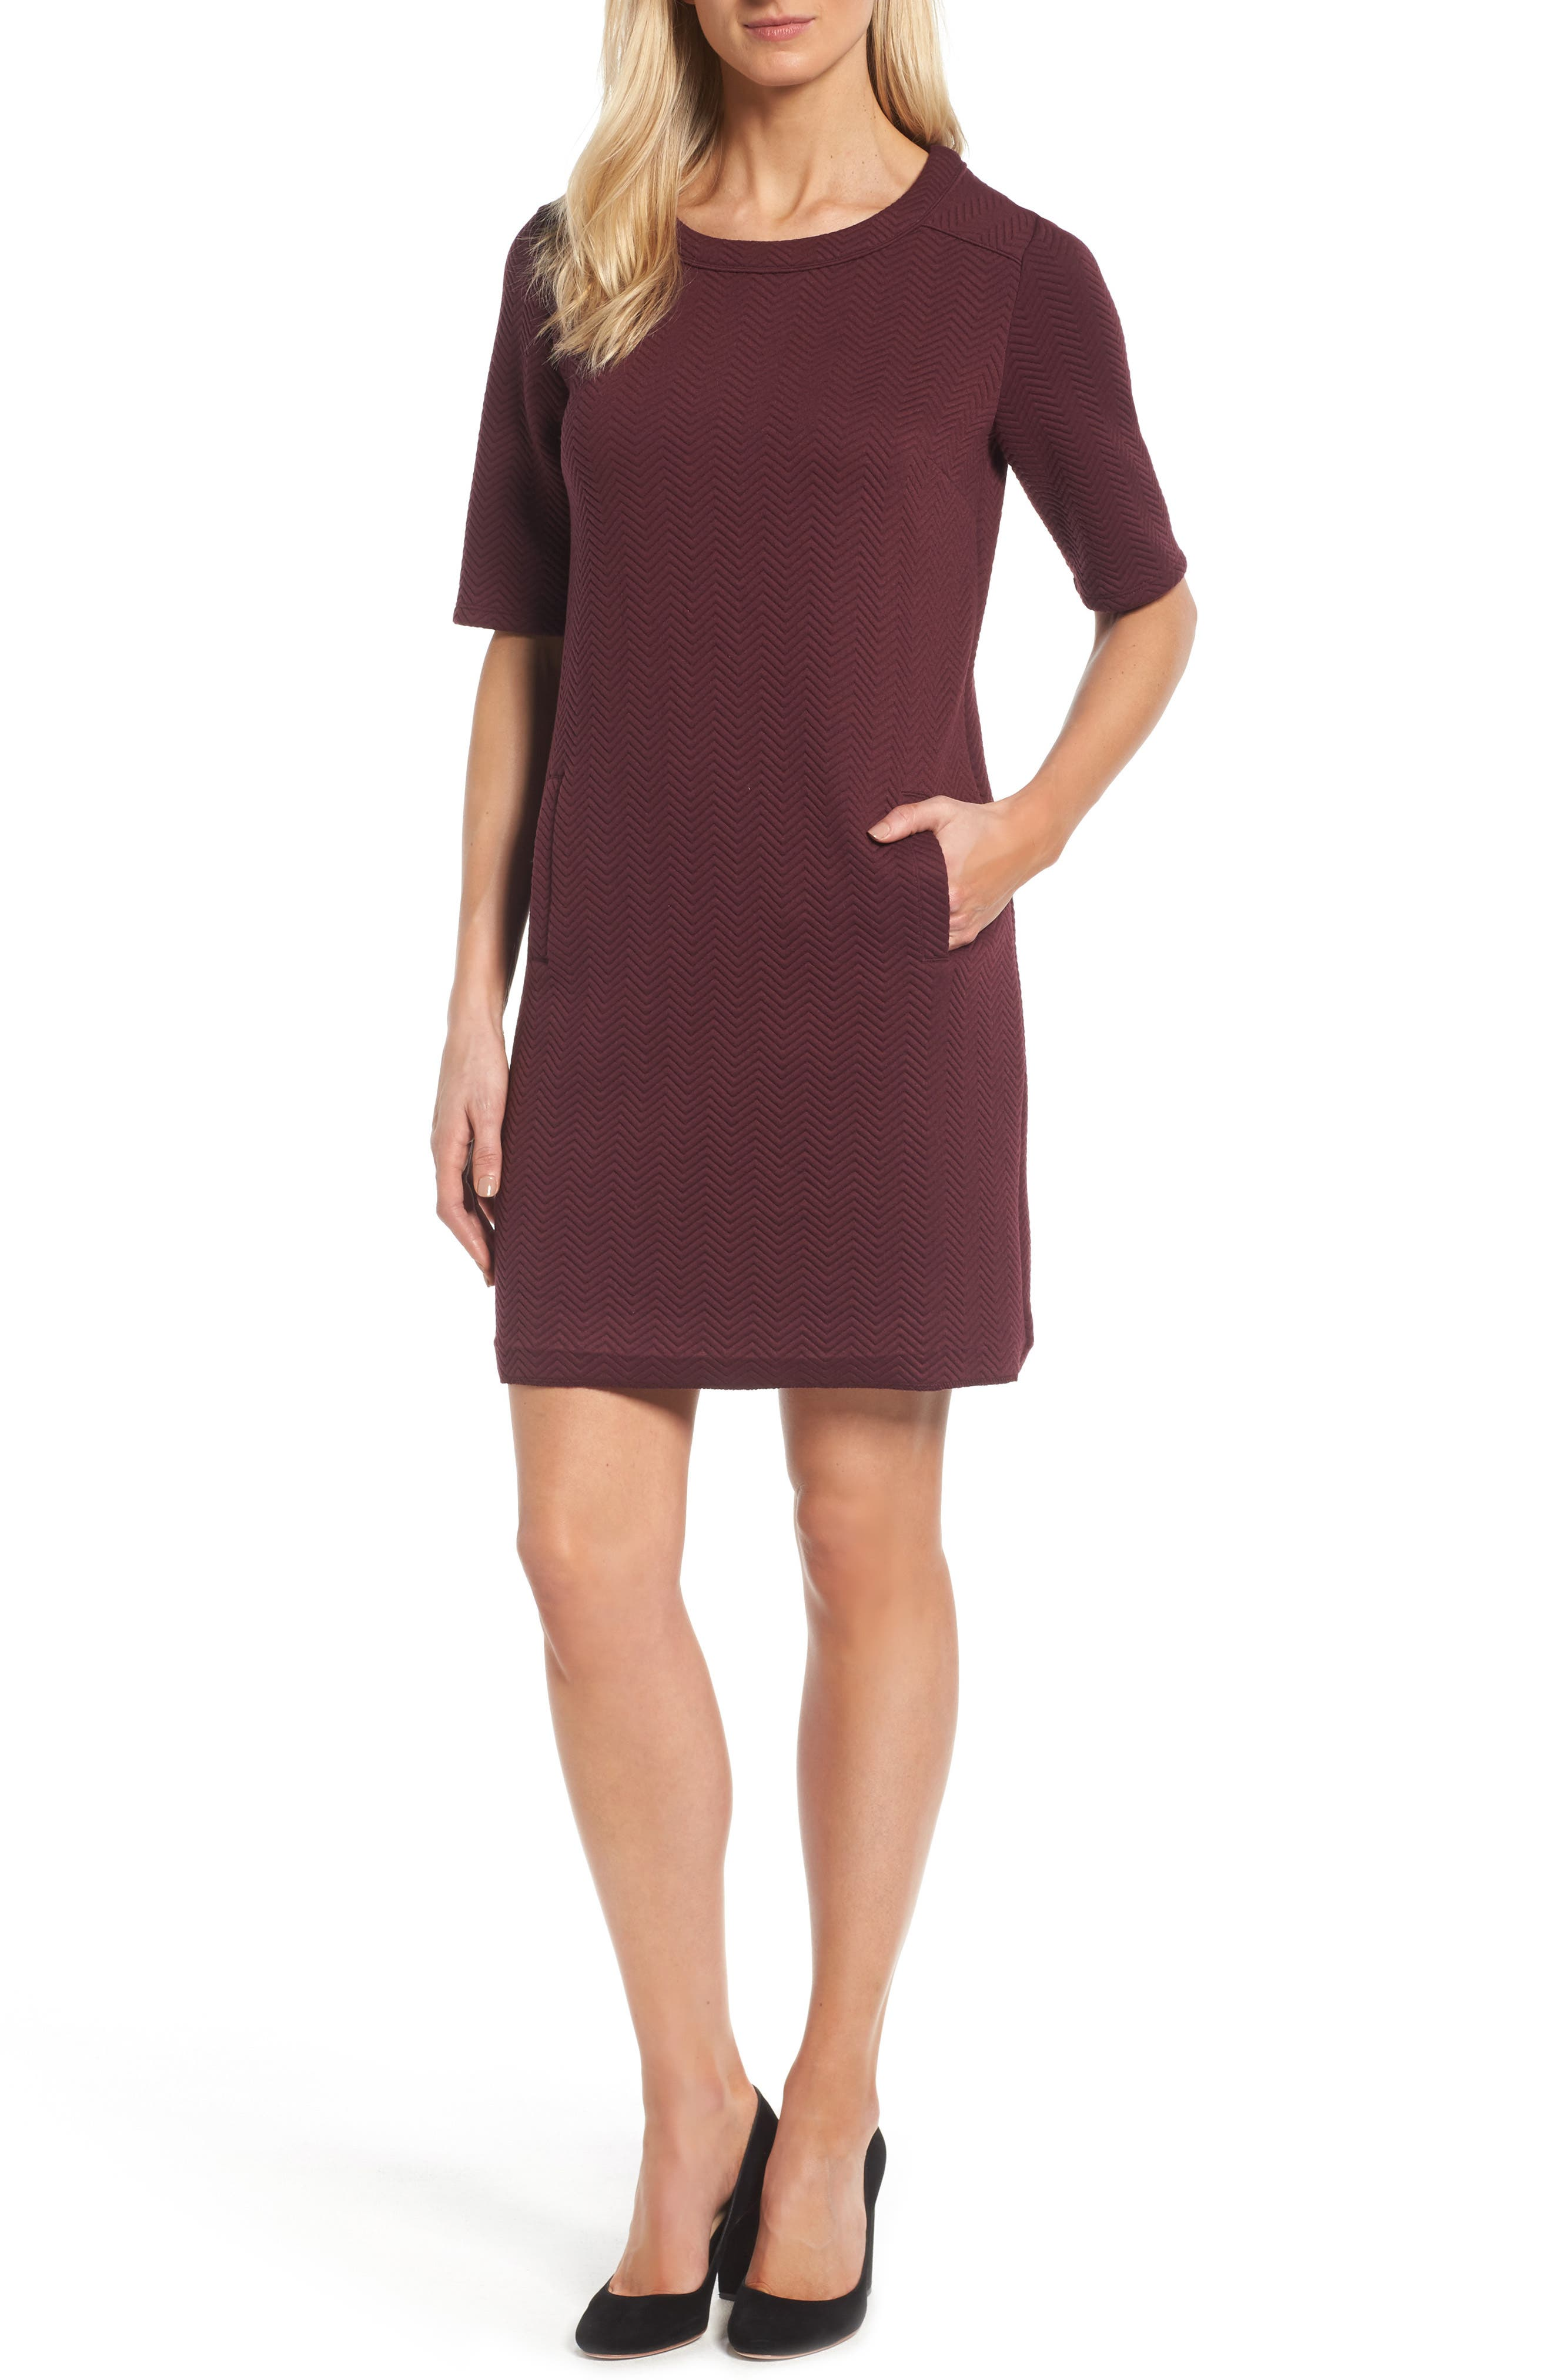 Main Image - Halogen® Textured Elbow Sleeve Tunic Dress (Regular & Petite)